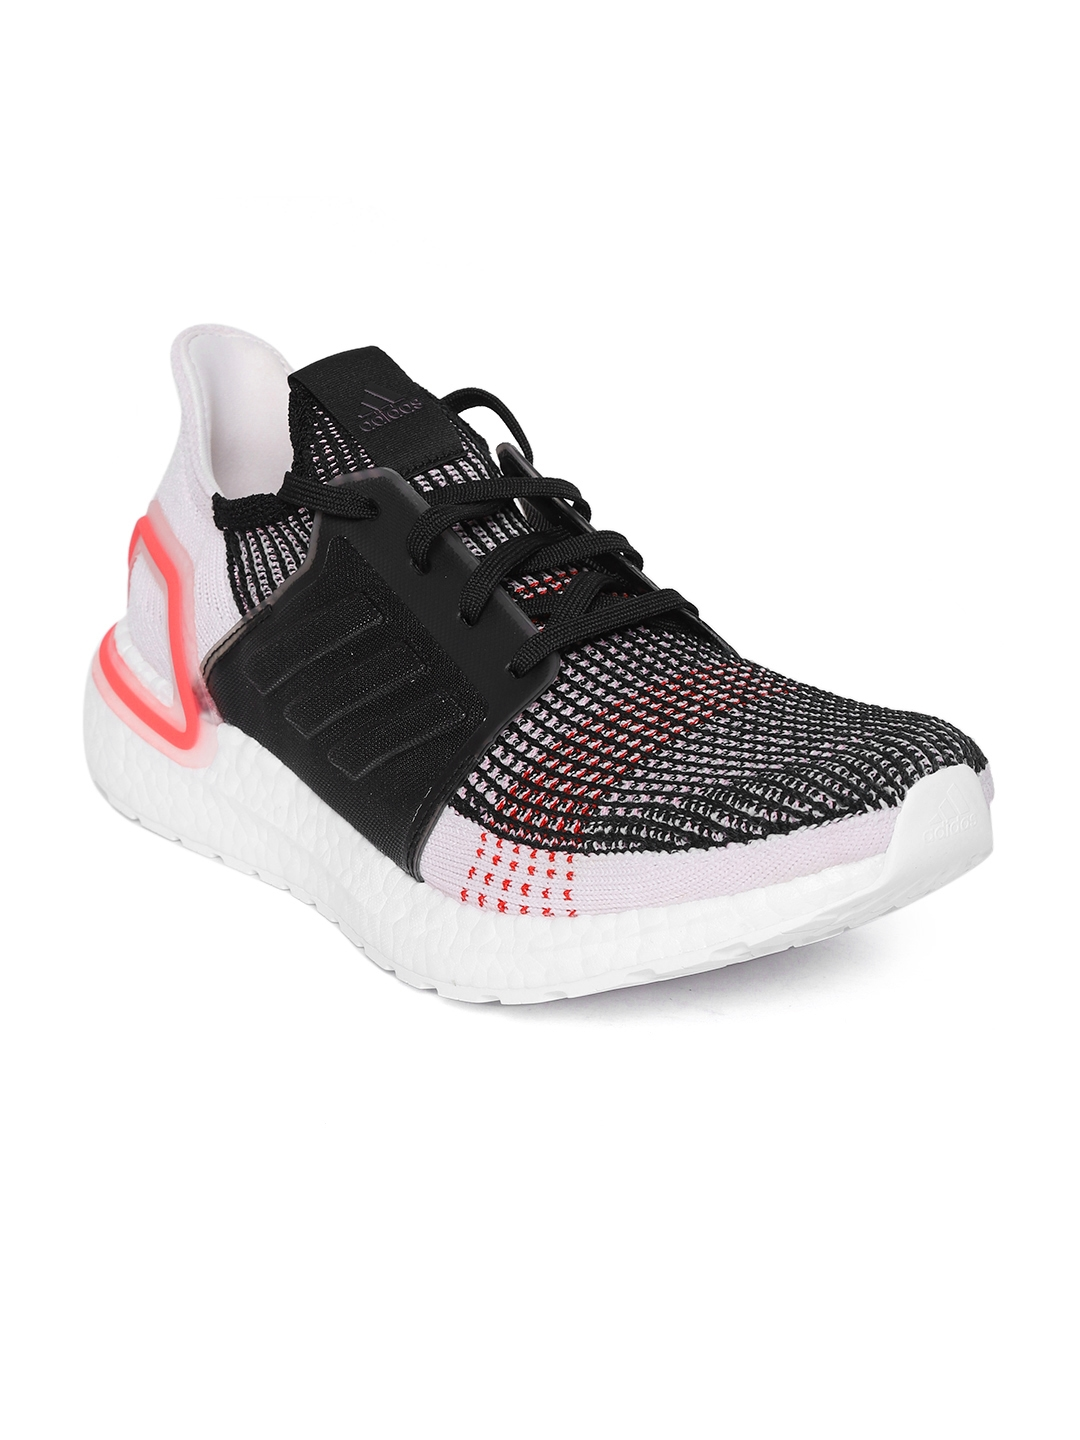 147fc83ee4dd3 Buy ADIDAS Men Black   White Ultraboost 19 Running Shoes - Sports ...